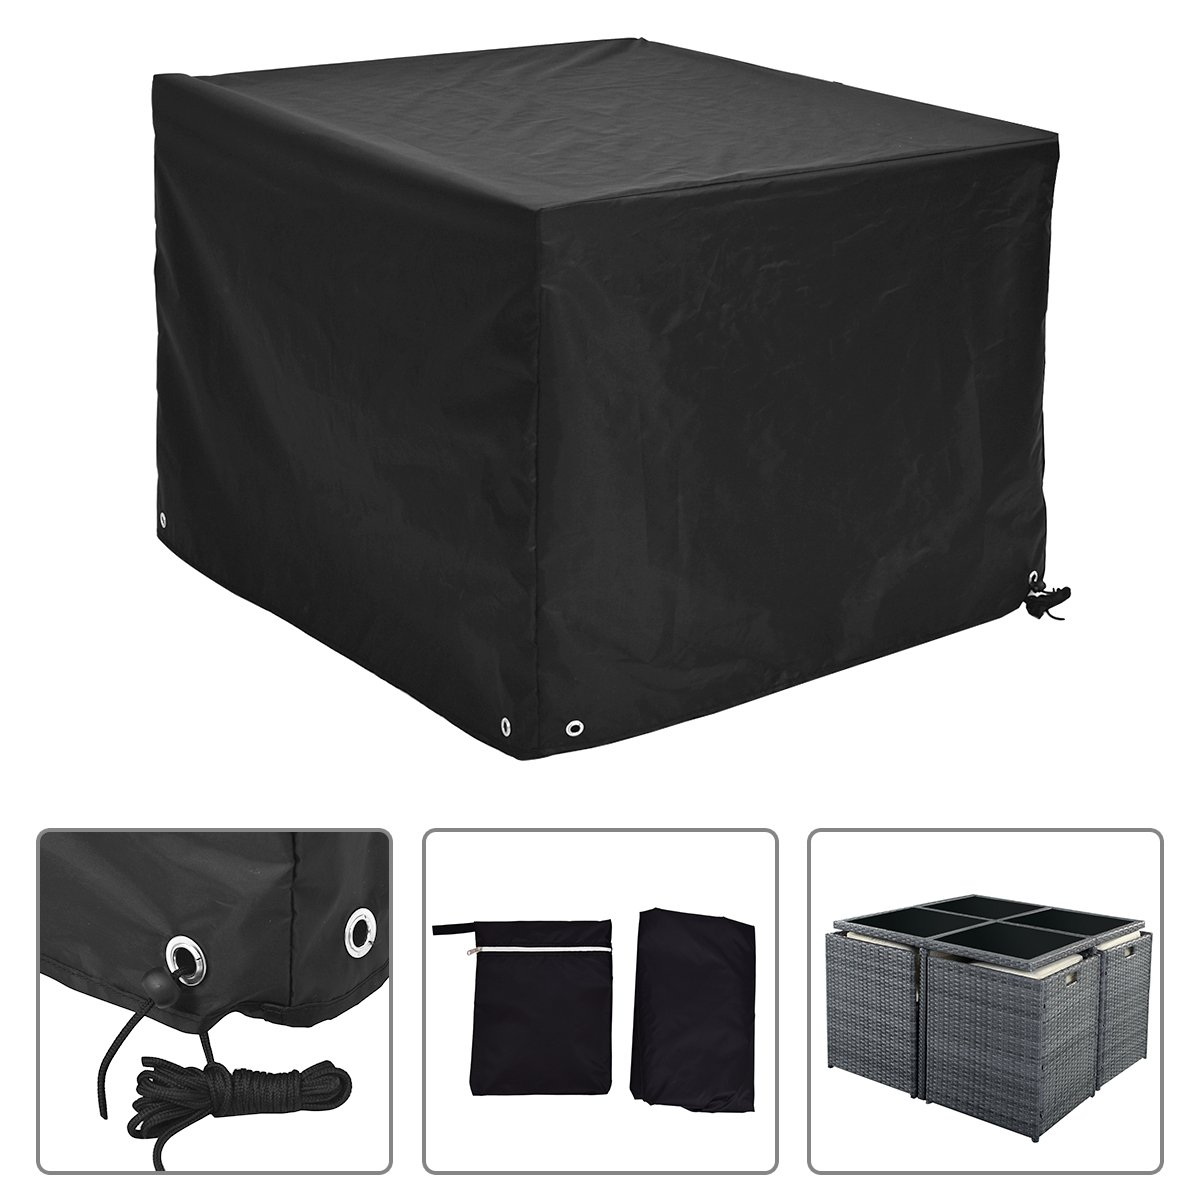 Costway Square Furniture Covers Patio Rattan Waterproof Cover Chair Table Protection (123CM x 123CM x 74CM)